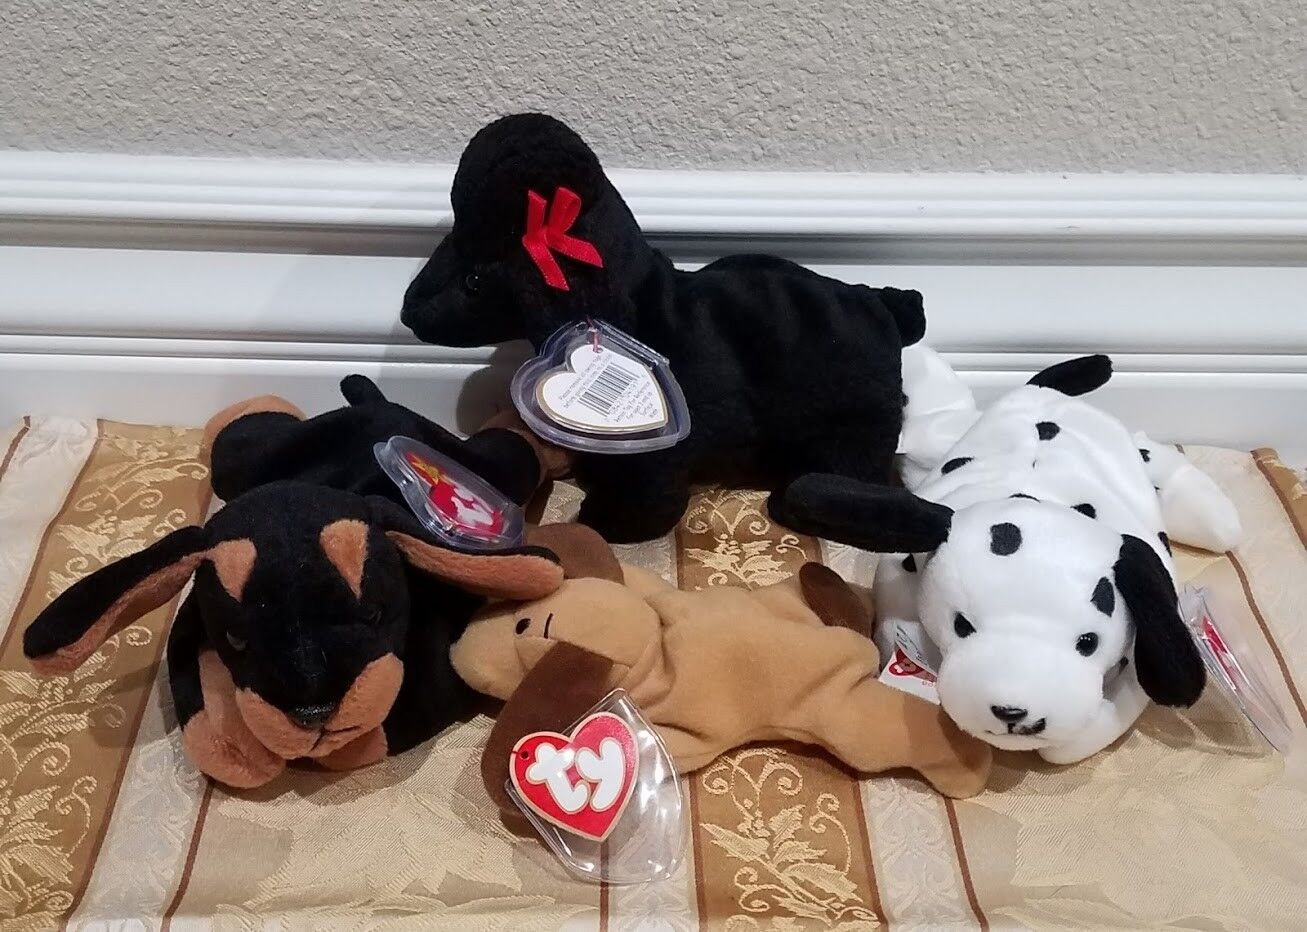 16eac707aa0 RARE Ty Beanie Babies w ERRORS - Dog Collection GiGi Doby Dotty Bones